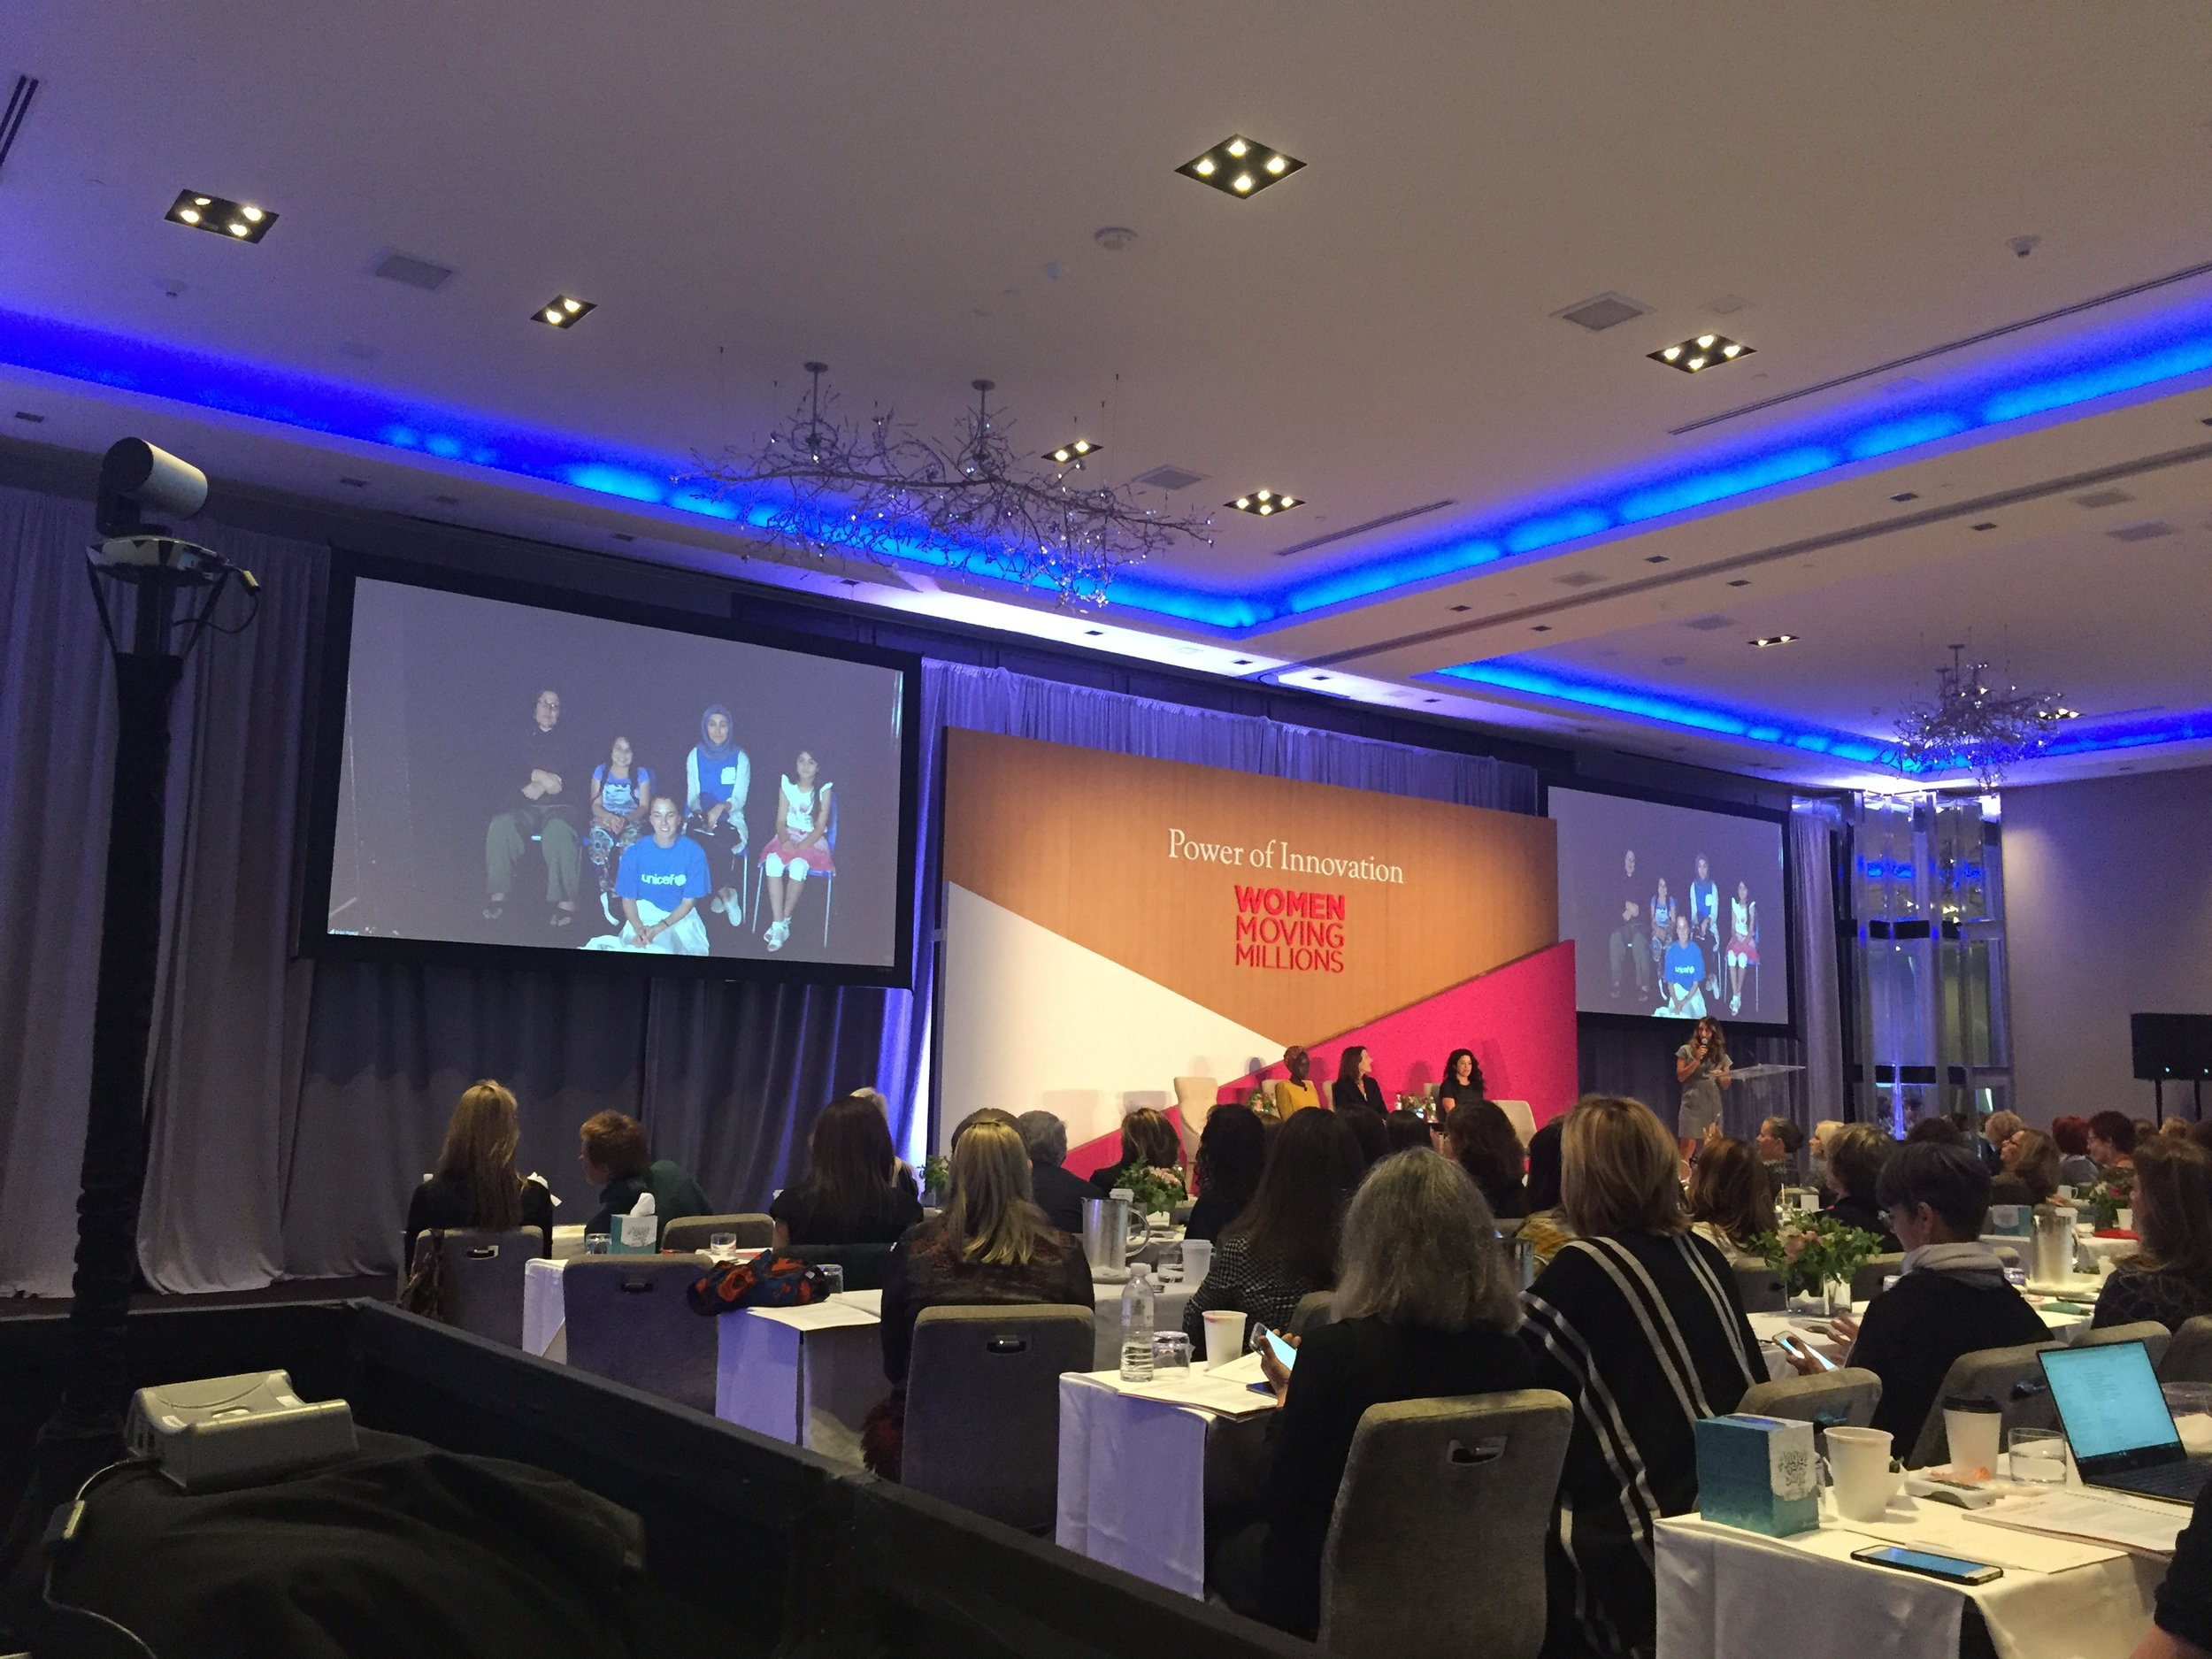 Women Moving Millions event connecting to Erbil Portal